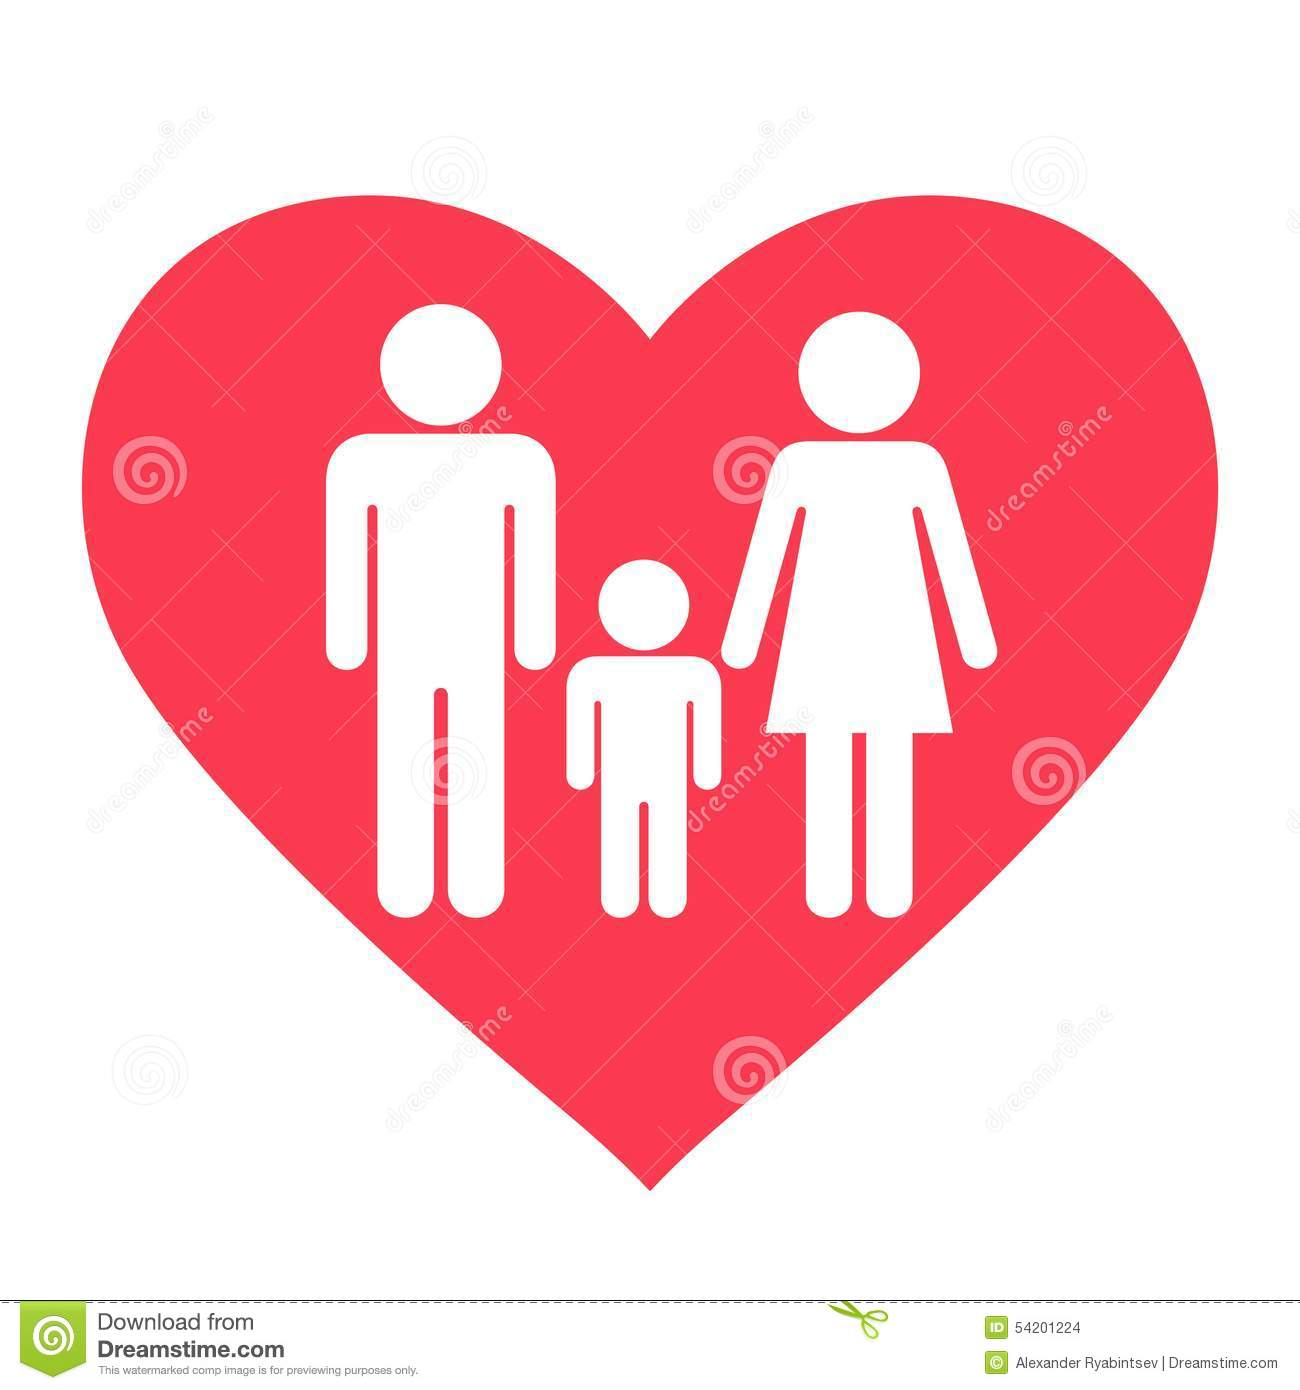 Heart Family Icon Stock Vector - Image: 54201224